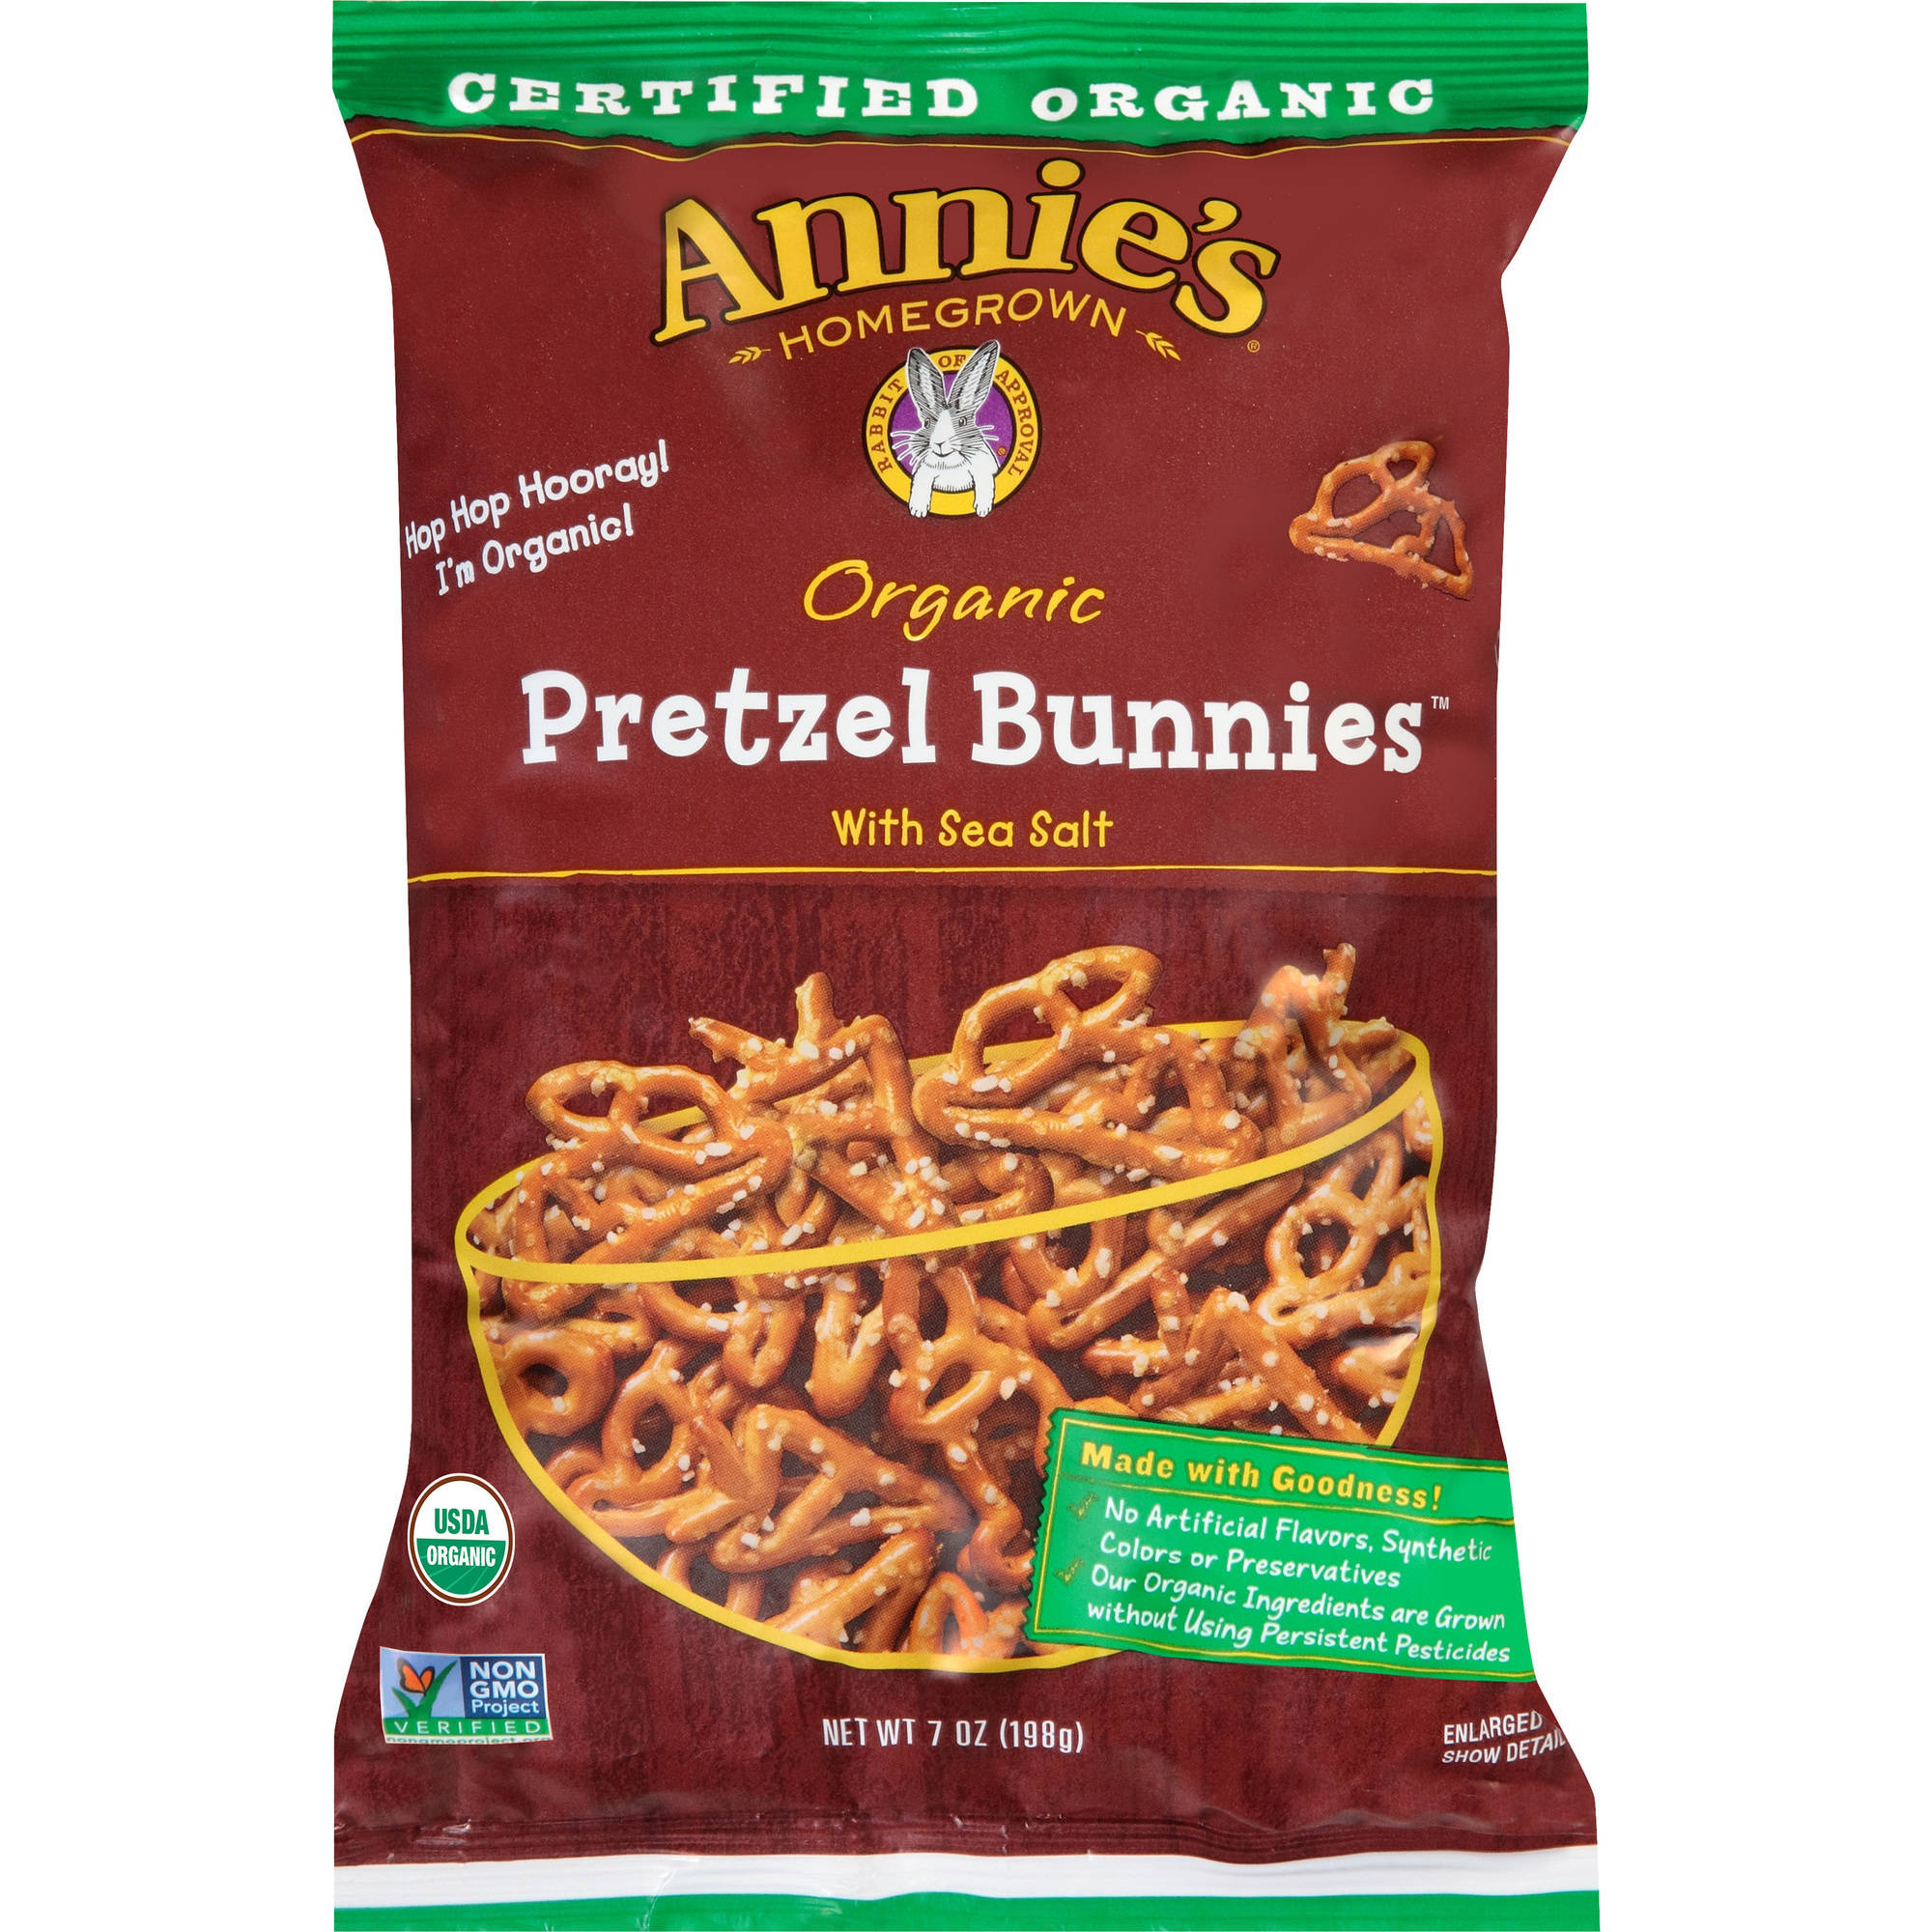 Annie's Homegrown Organic Pretzel Bunnies, 7 oz, Pack of 12